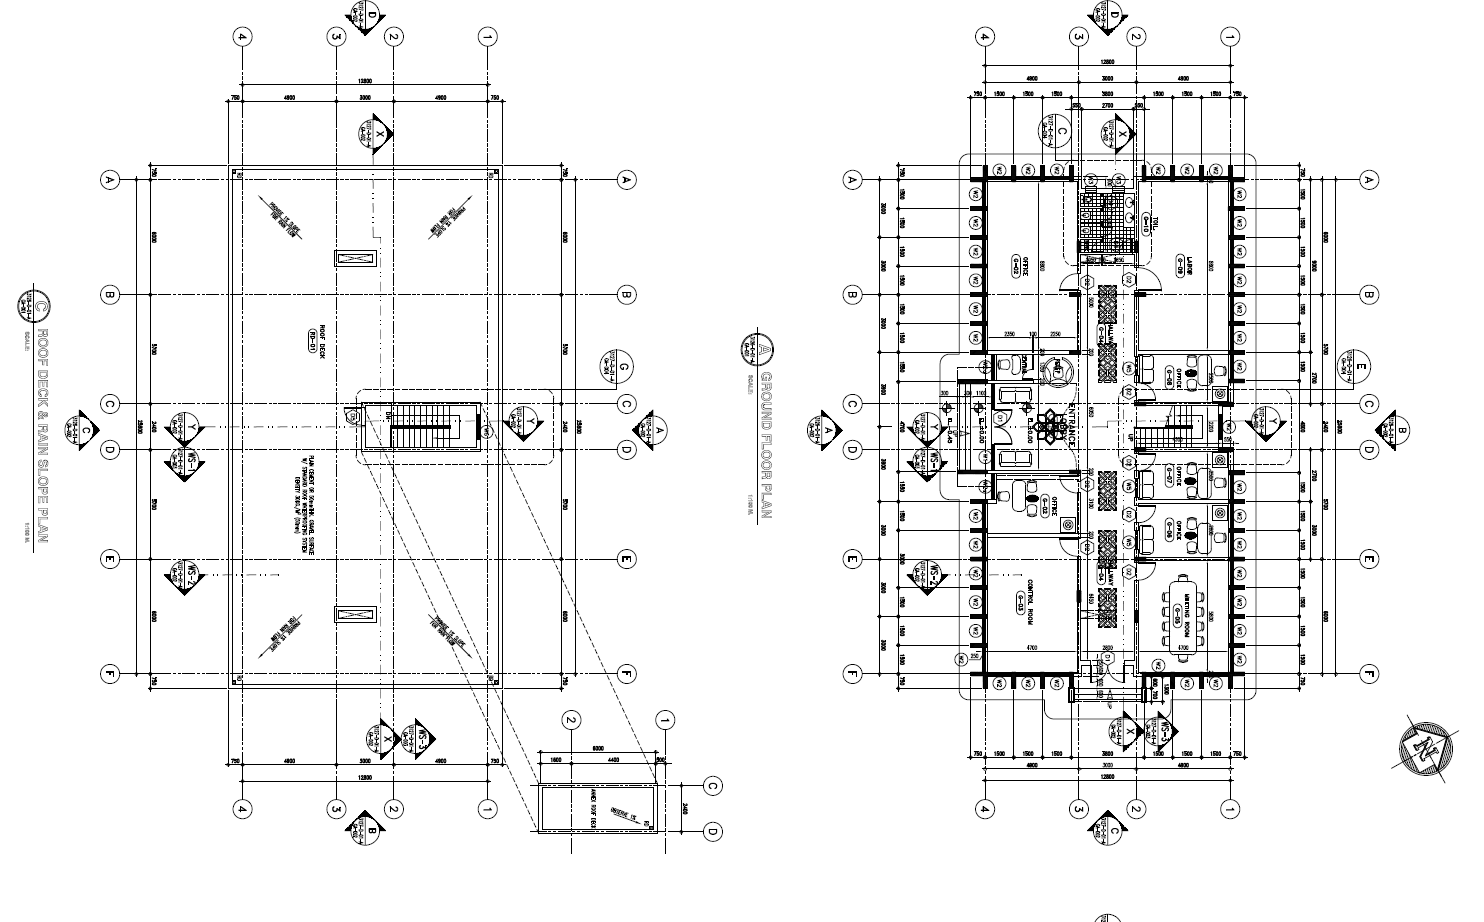 Office Building Layout plan detail